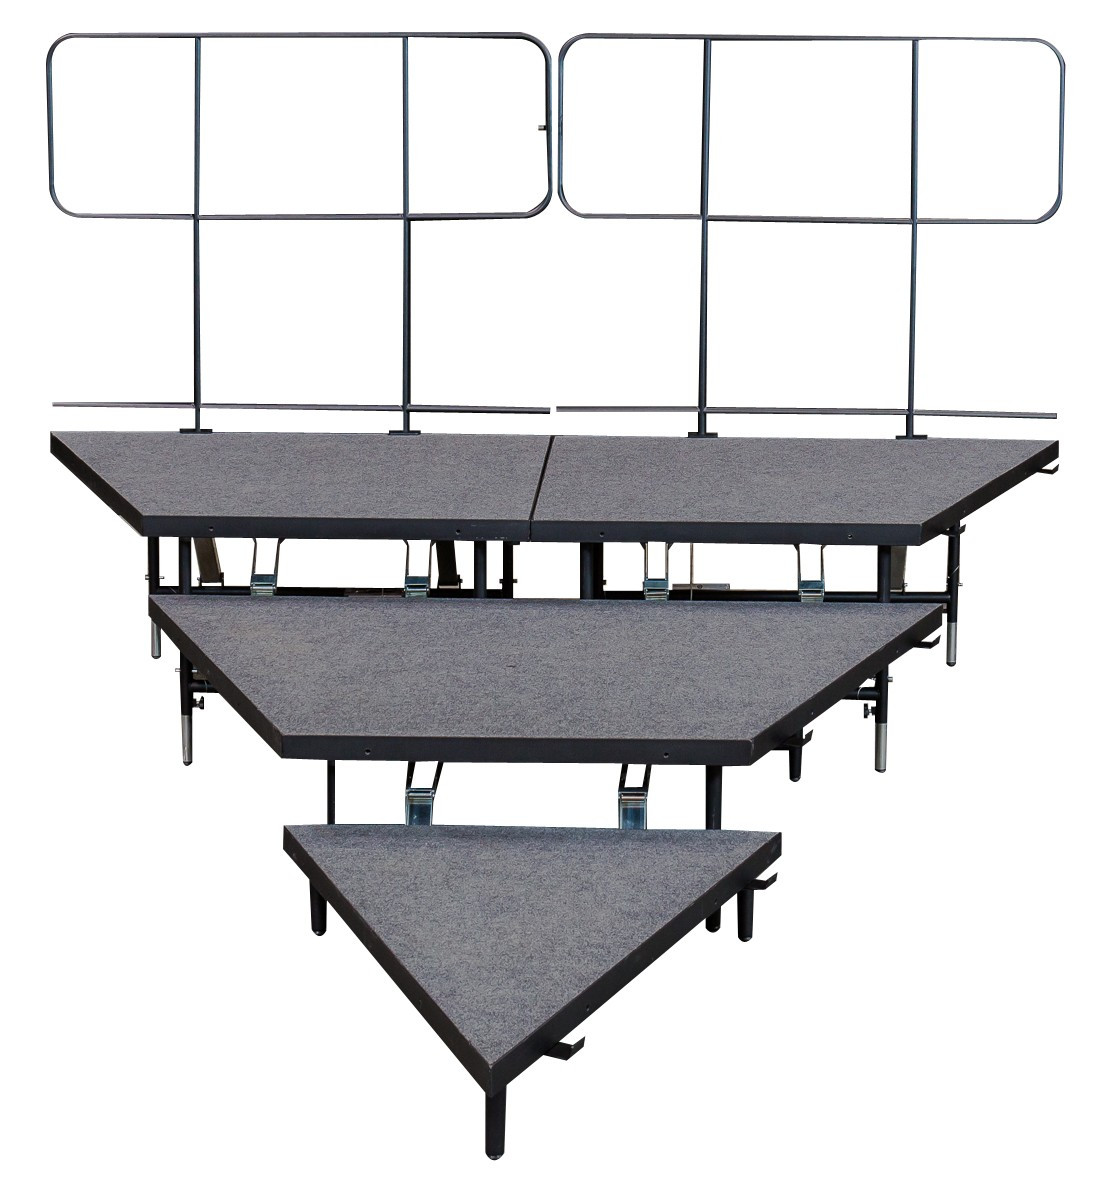 "8"", 16"" , 24"" HIGH - 3 PANEL WEDGER SEATED RISER SYSTEM w REAR GUARDRAIL- INDUSTRIAL FINISH"